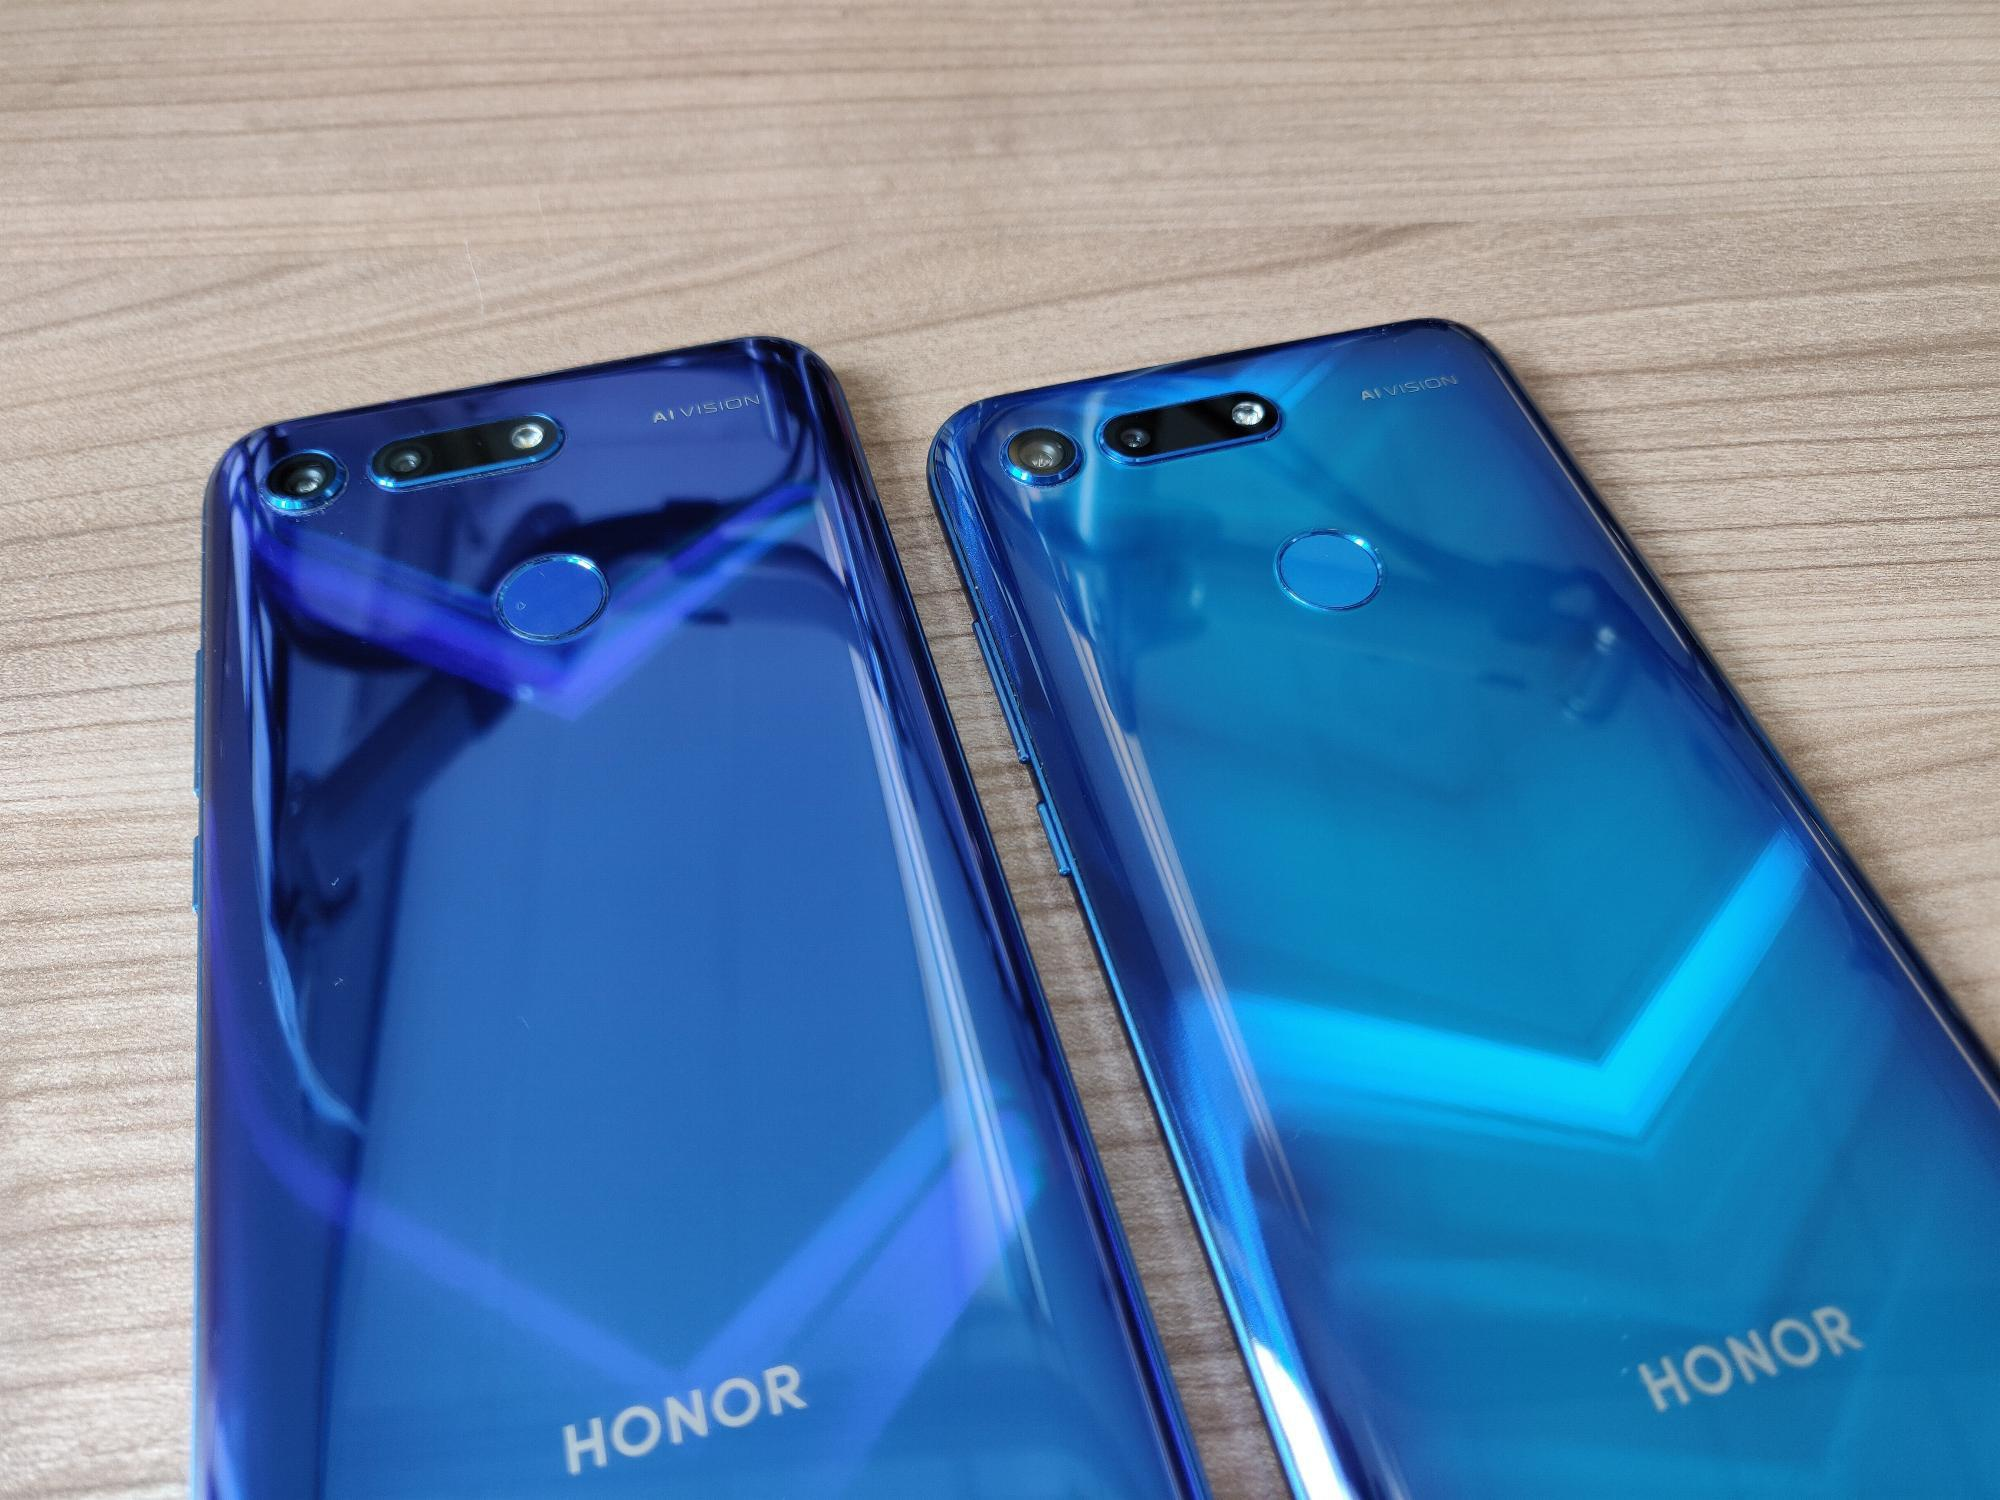 Honor View 20 Sapphire Blue vs Phantom Blue (Moschino Edition)